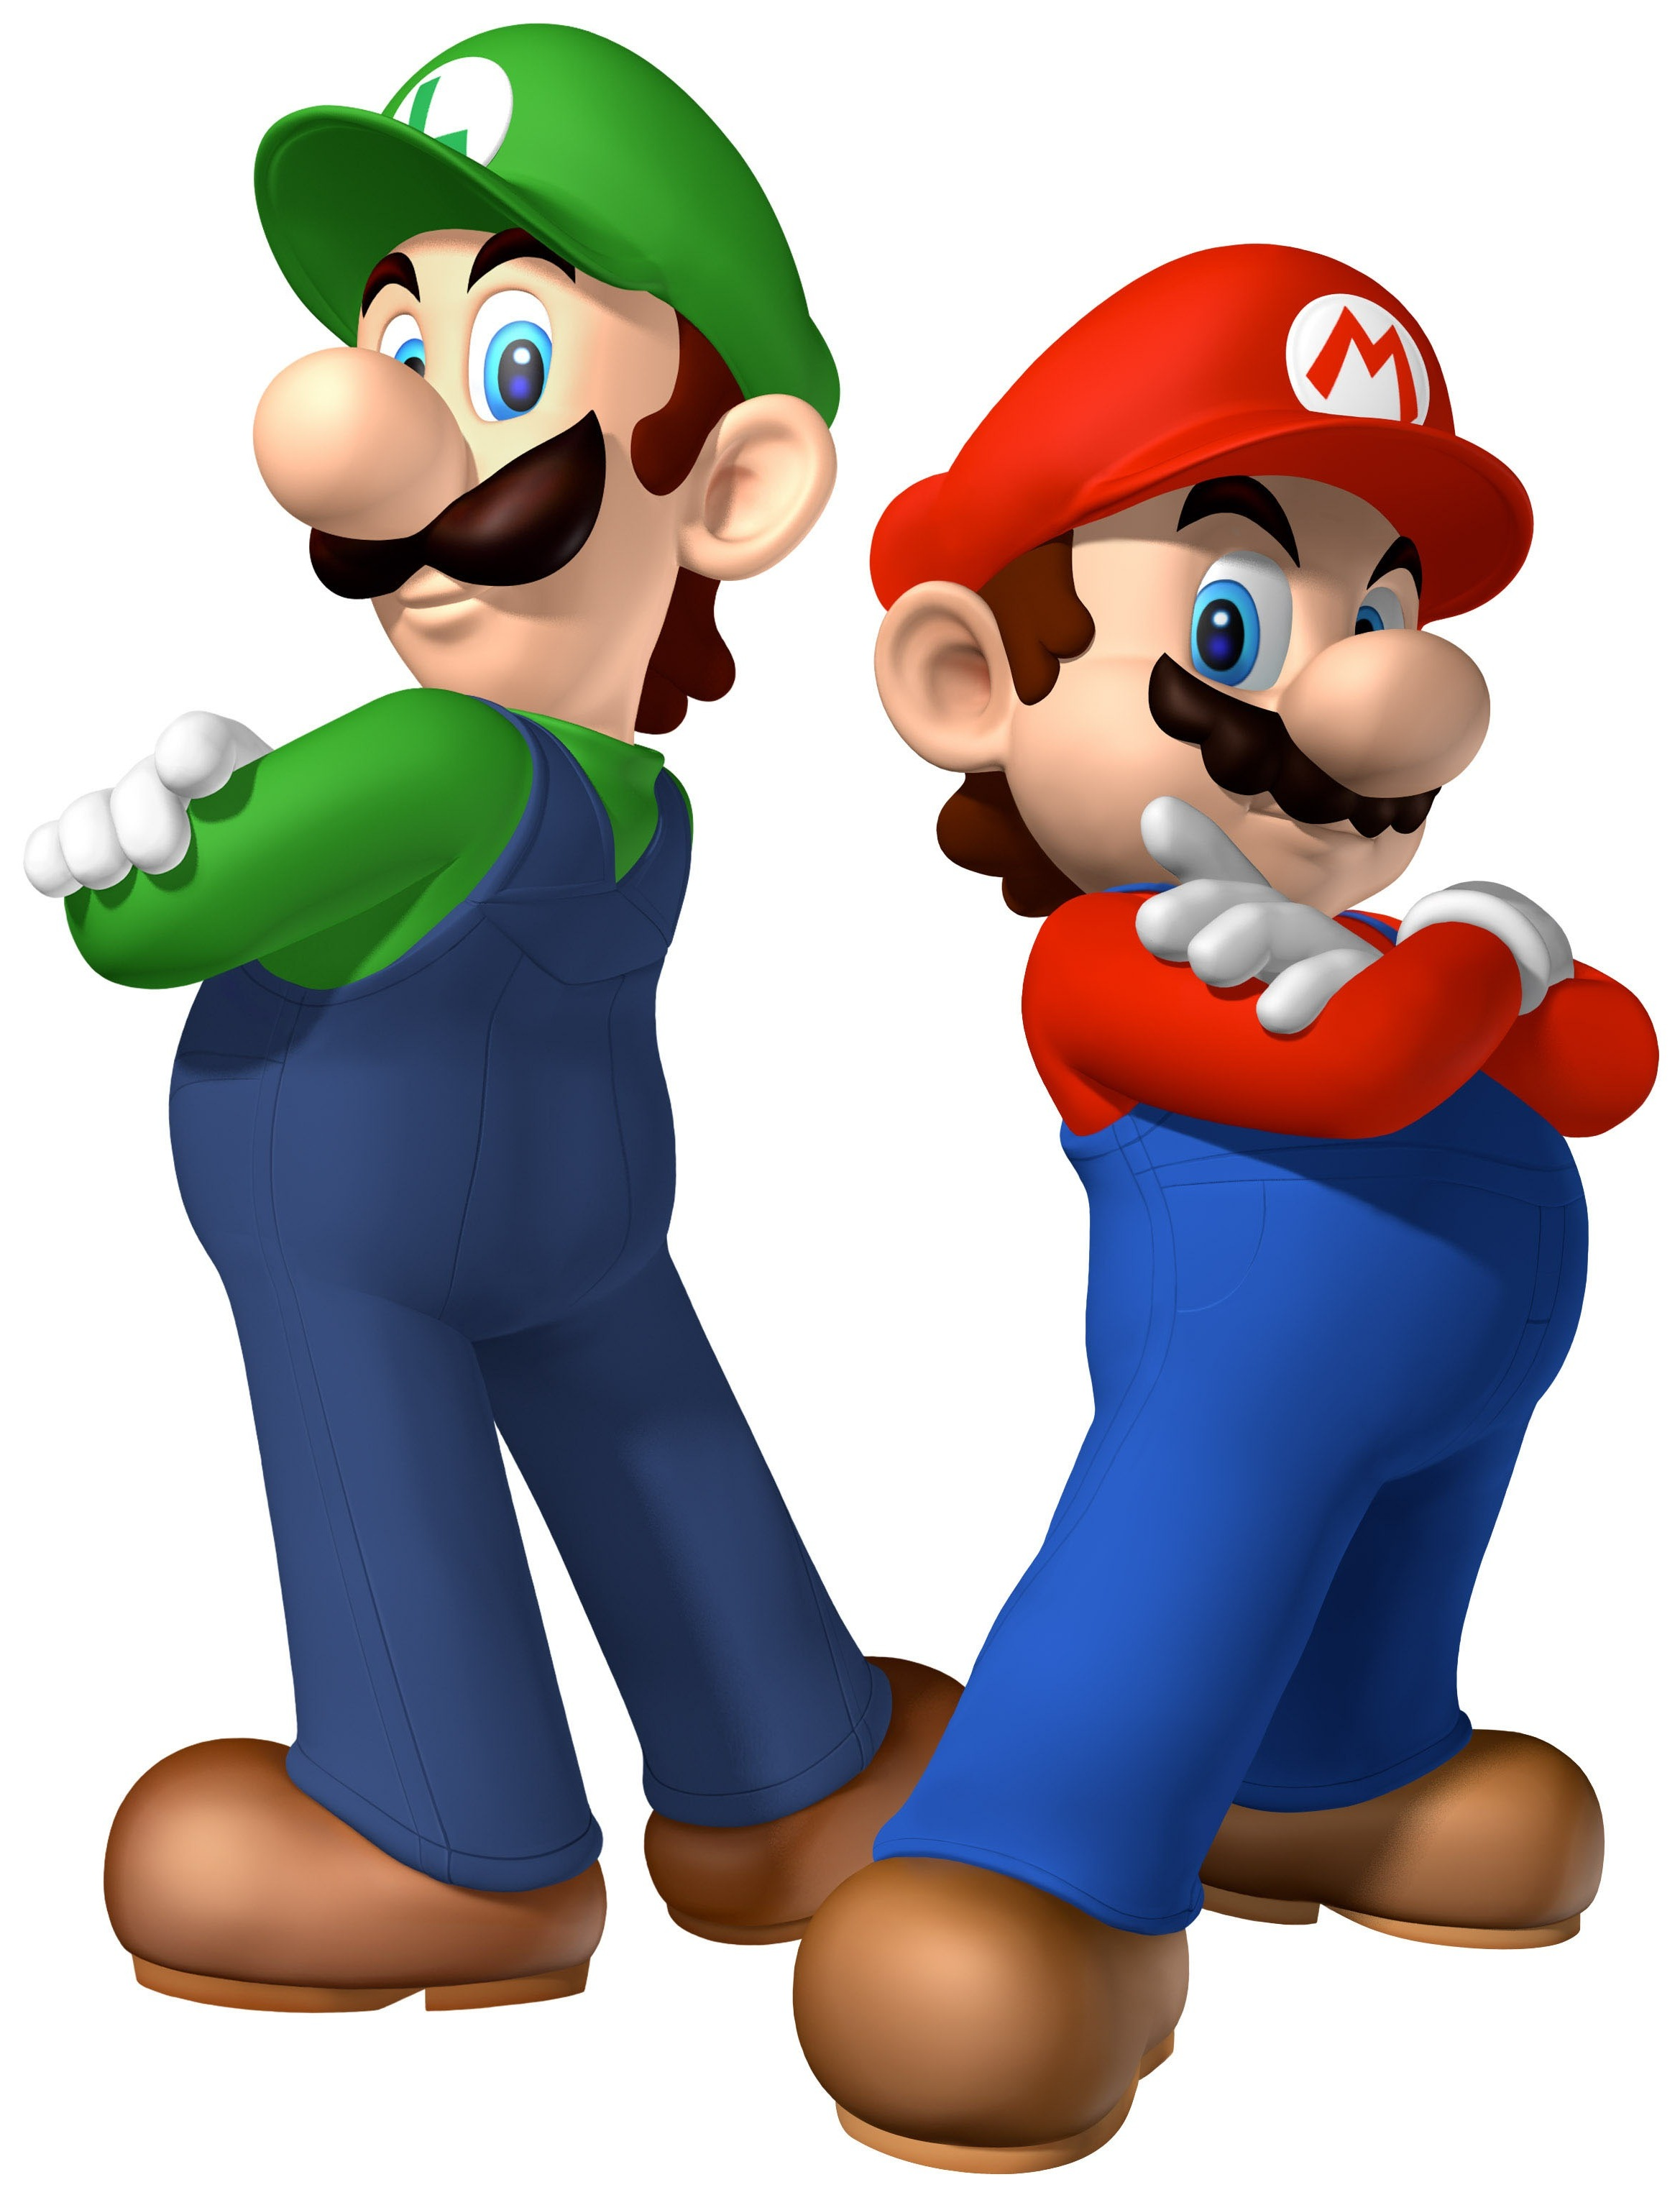 Mario Vs Luigi   Dreager1 S Blog